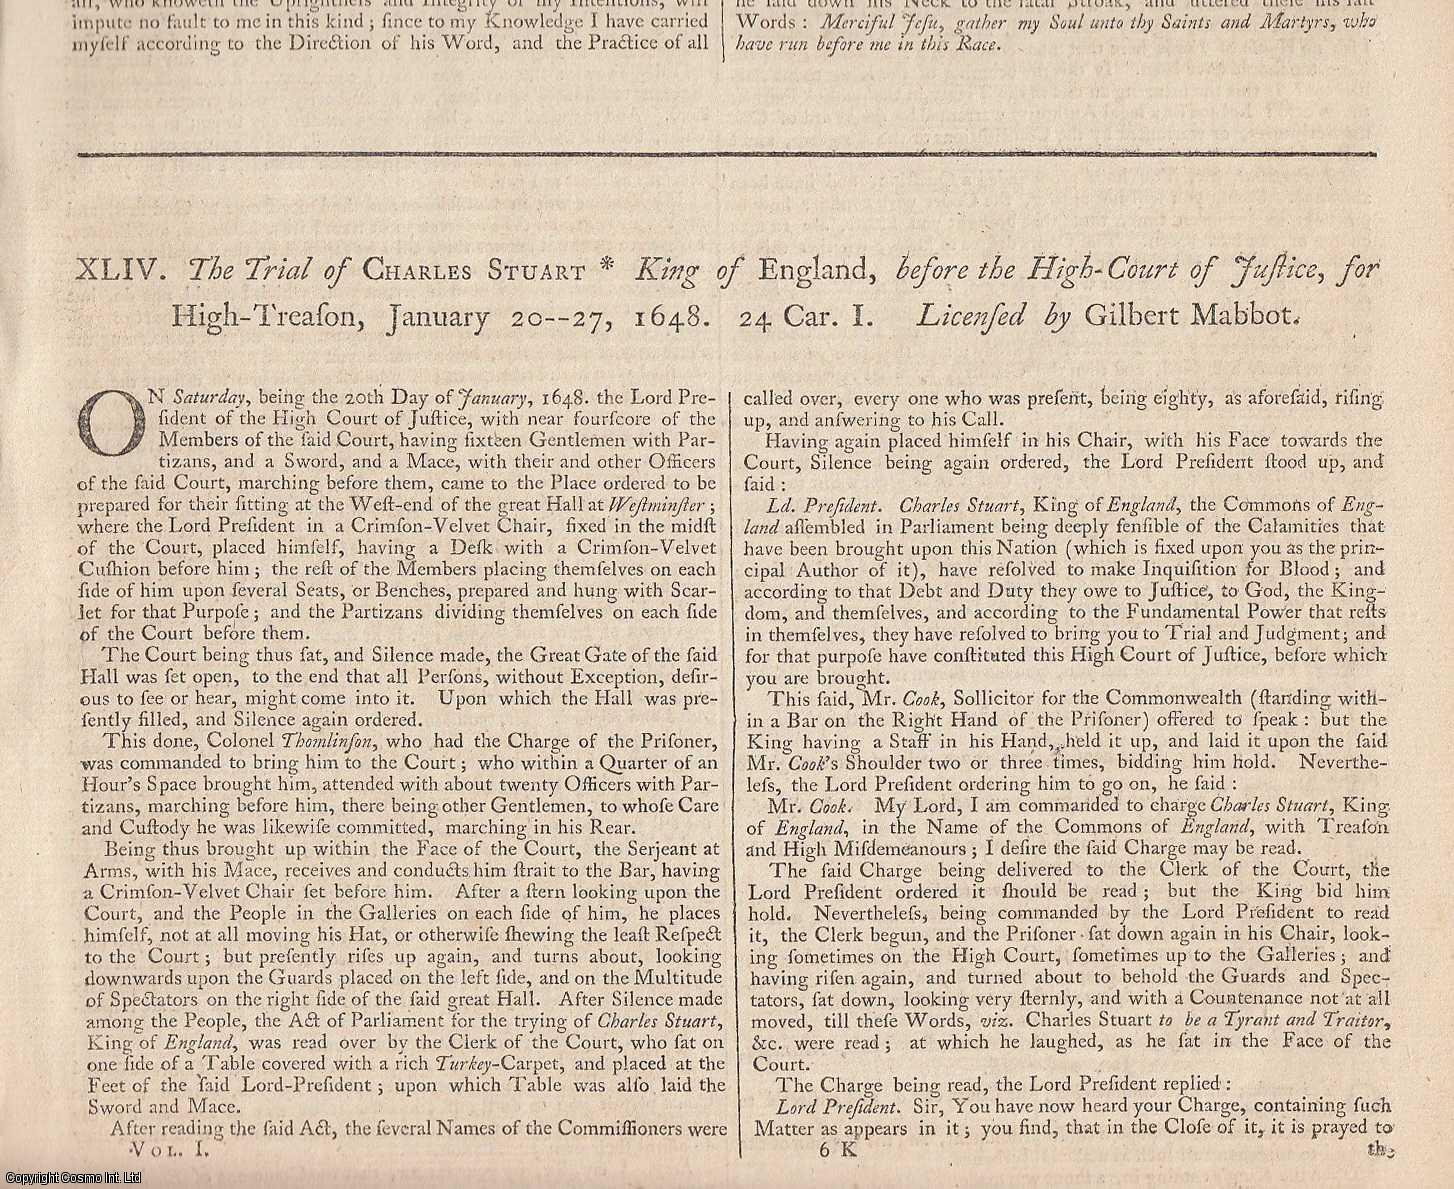 CHARLES I, 1649 & THE REGICIDES, 1660.  An important collection of State Trials & Reports, featuring the Trial of Charles I, for High Treason, 1649, and the Trials of 29 Regicides for the killing of Charles I, together with other related reports. Together with The Indemnity & Oblivion Act of 1660, Charles II, from Statutes at Large 1735., [Trial].